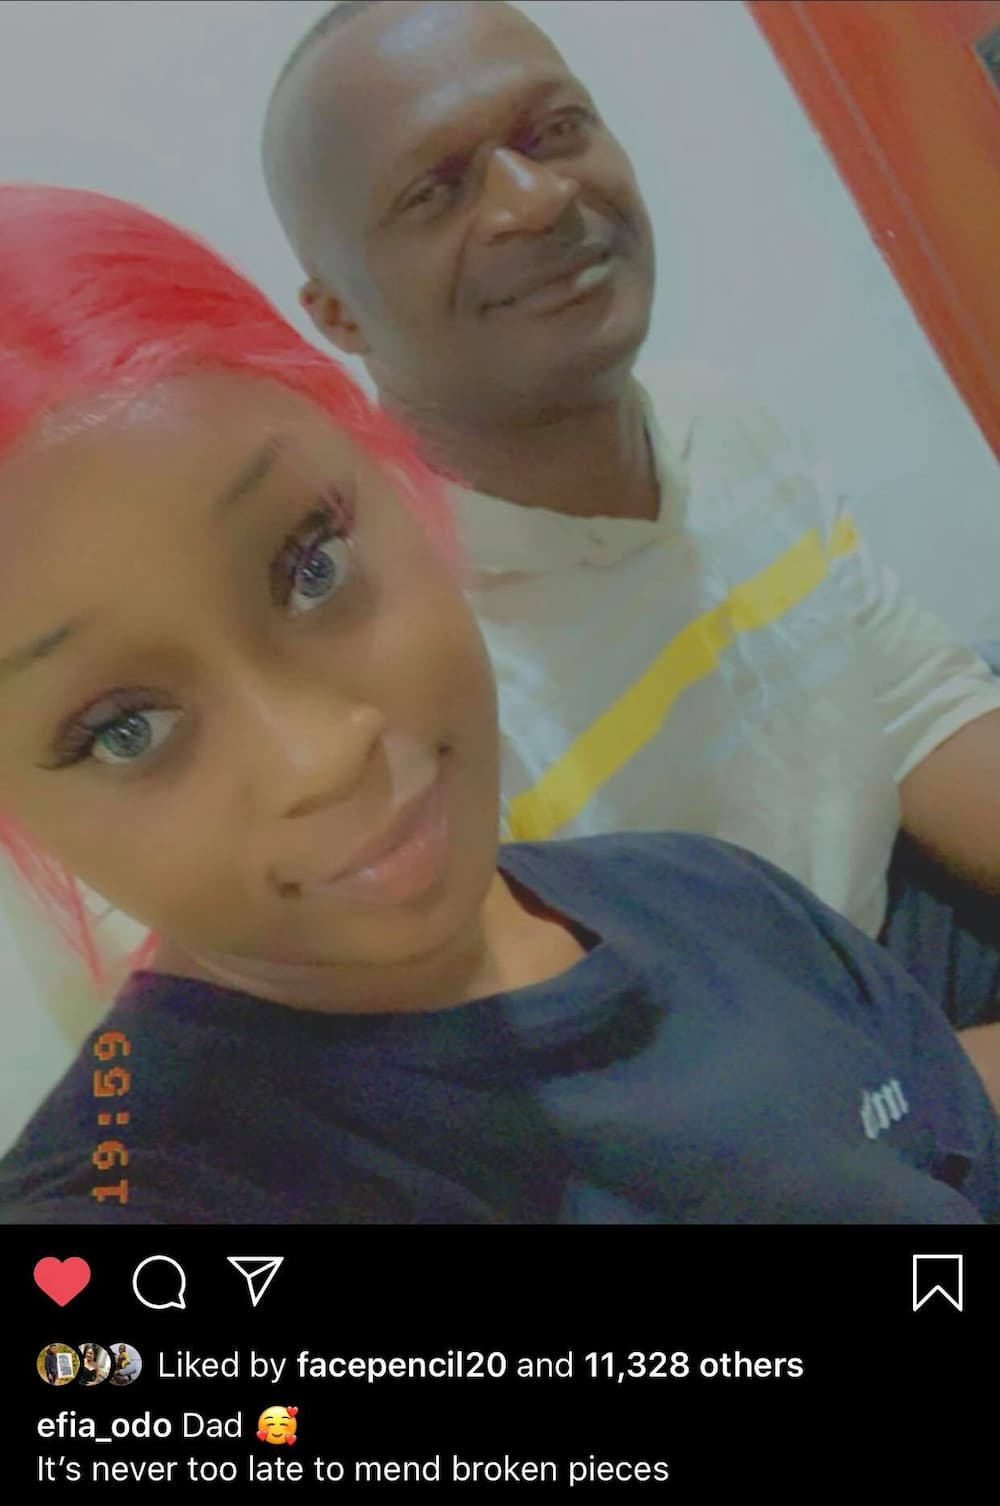 Efia Odo flaunts her father in new photo